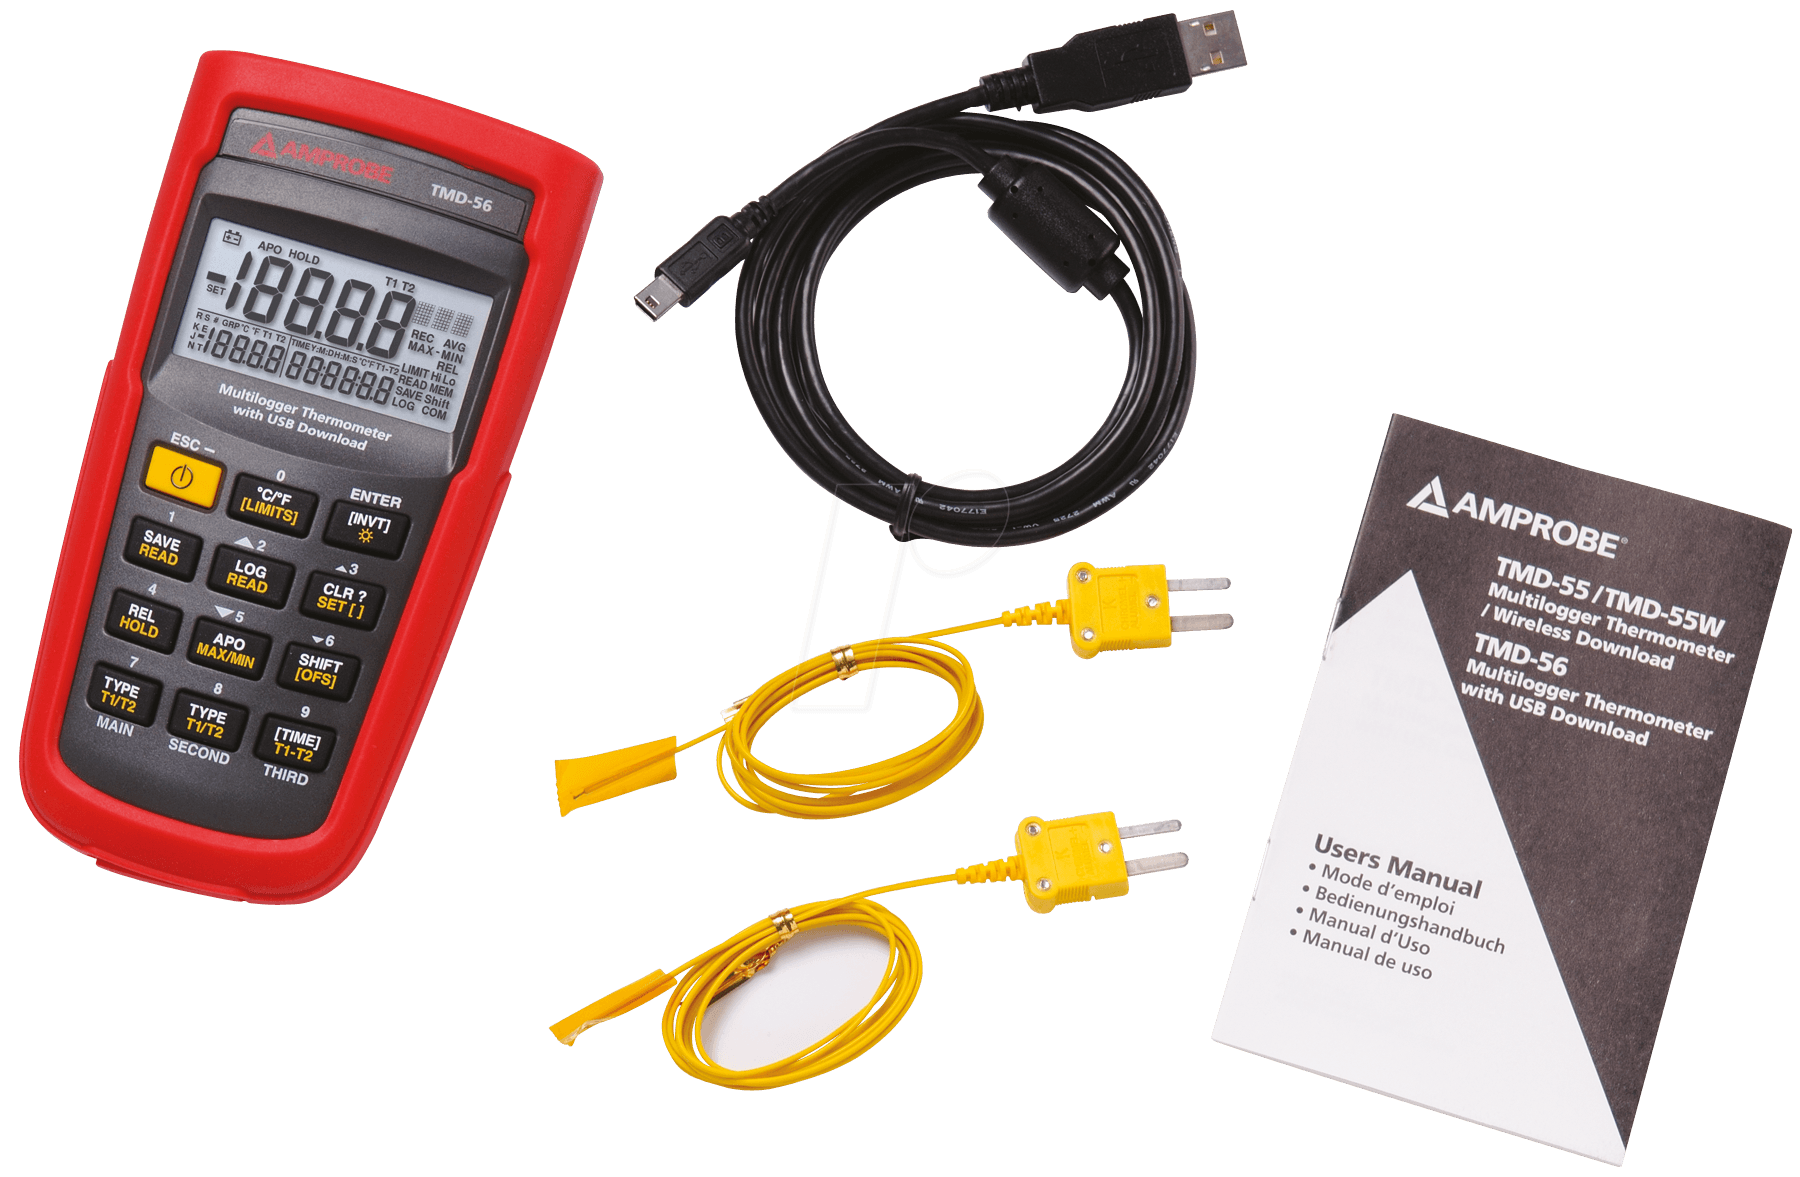 Amprobe TMD-56 Digital Thermometer with 0.05/% Basic Accuracy Multi-logging